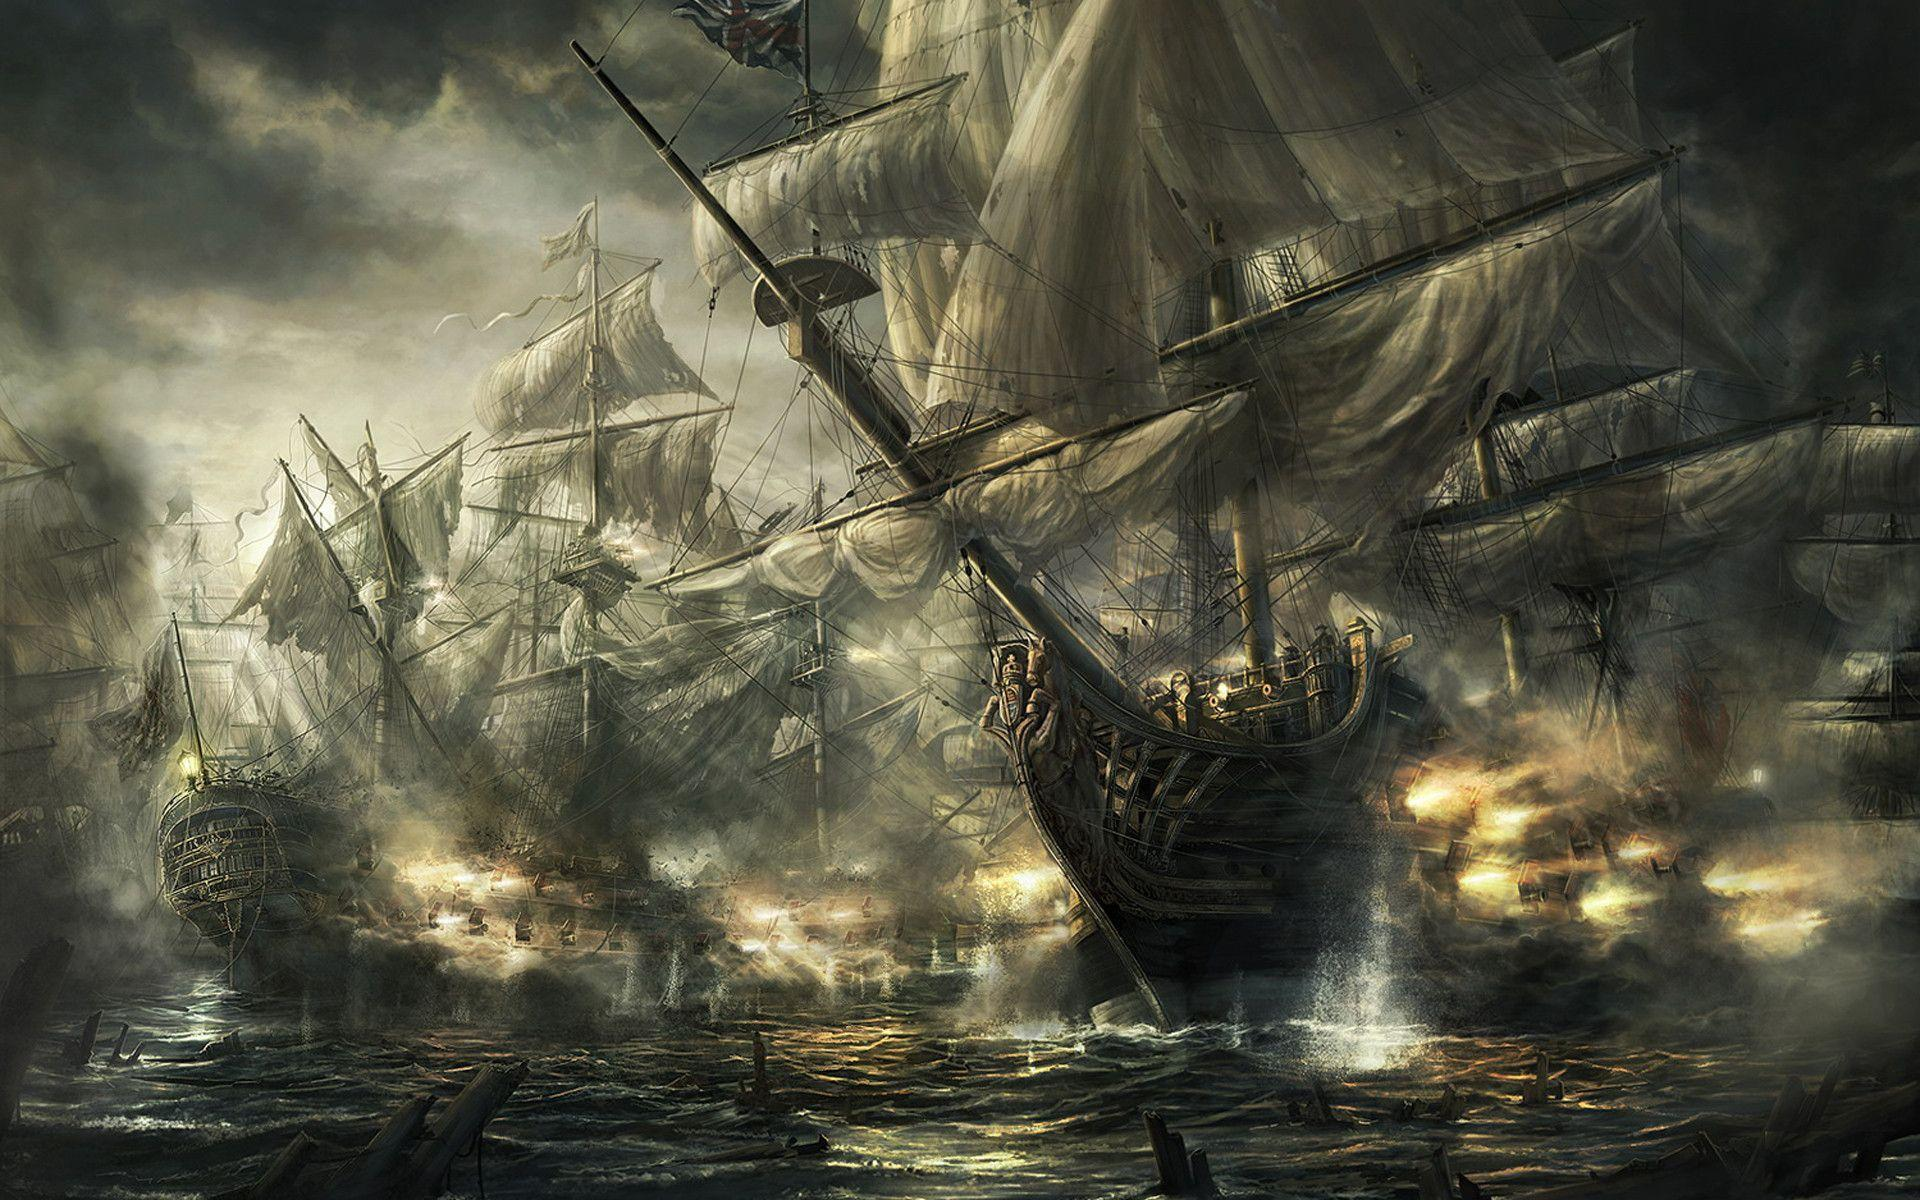 pirate hd wallpapers apple iphone - photo #16